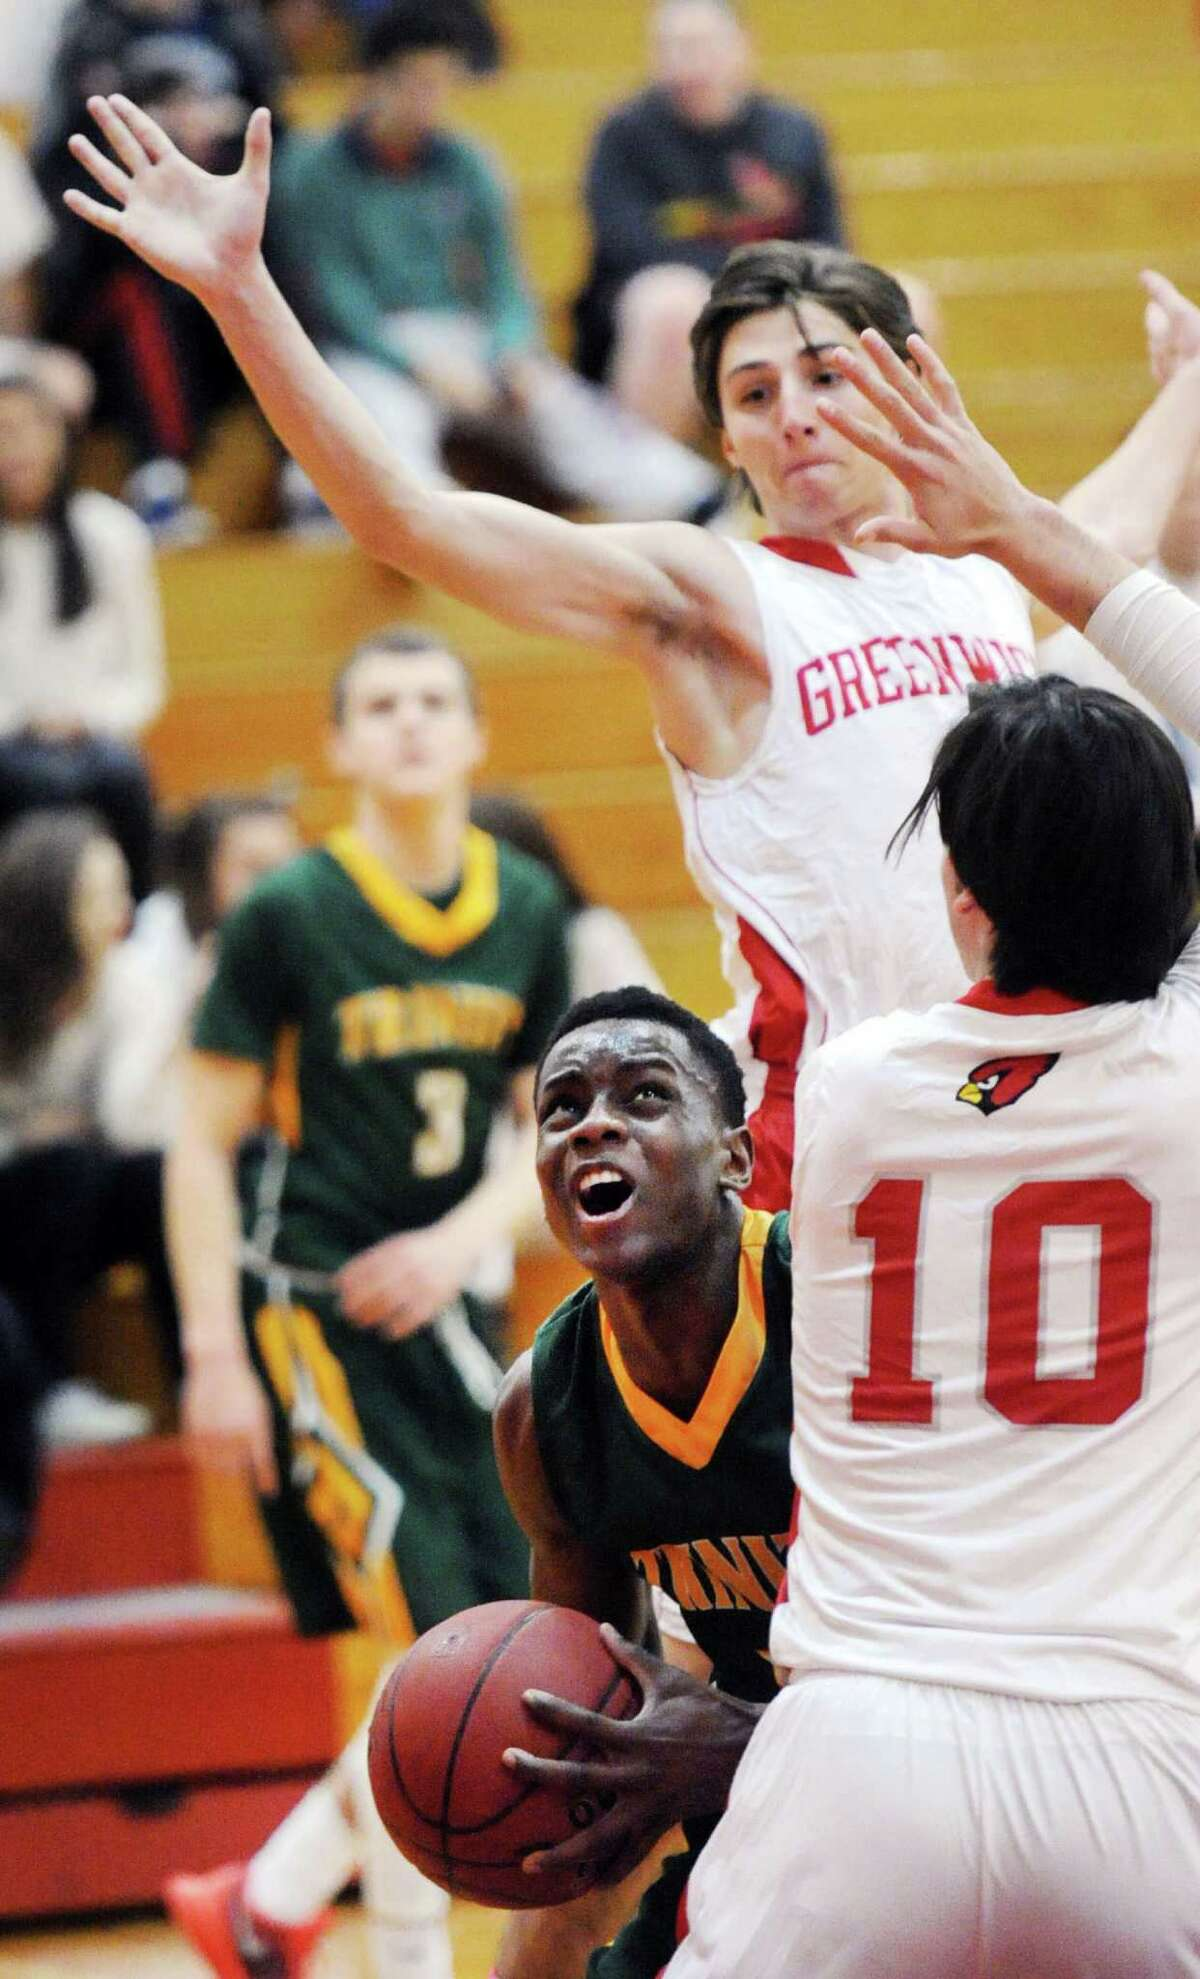 Trinity Catholic's Cantavio Dutreil, left, reacts as he pump-fakes a Greenwich defender in the air while getting around Connor Langan (10) on Tuesday night.